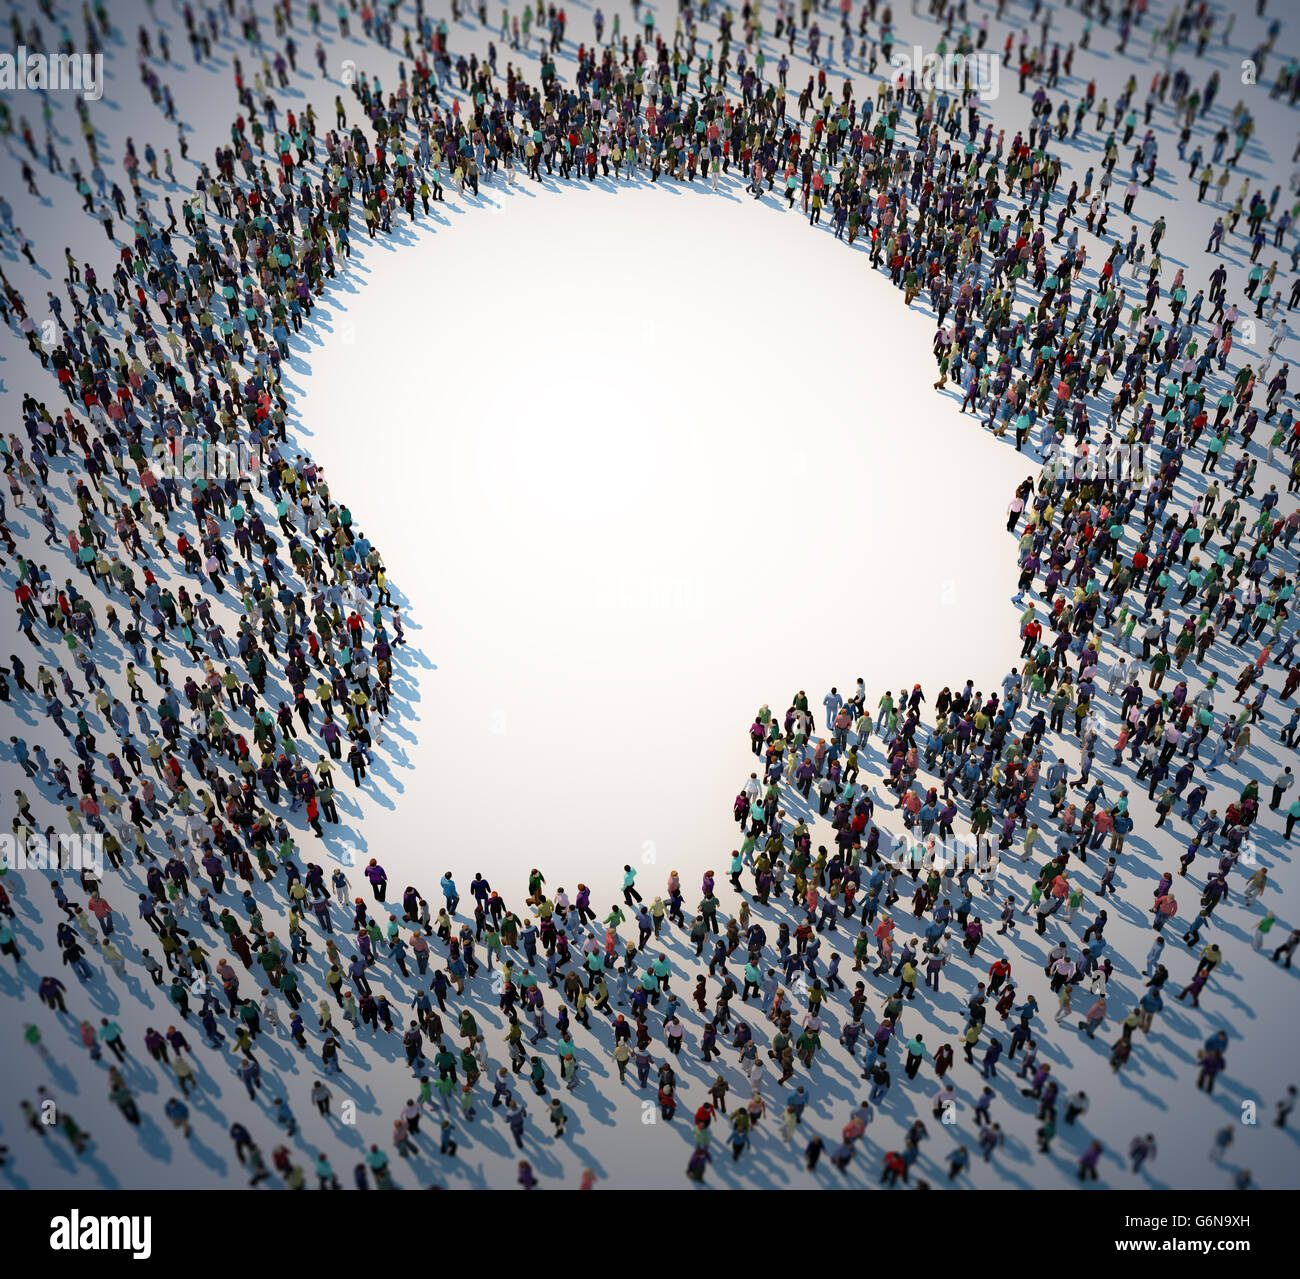 Grand groupe de personnes formant un symbole tête - 3D illustration Photo Stock